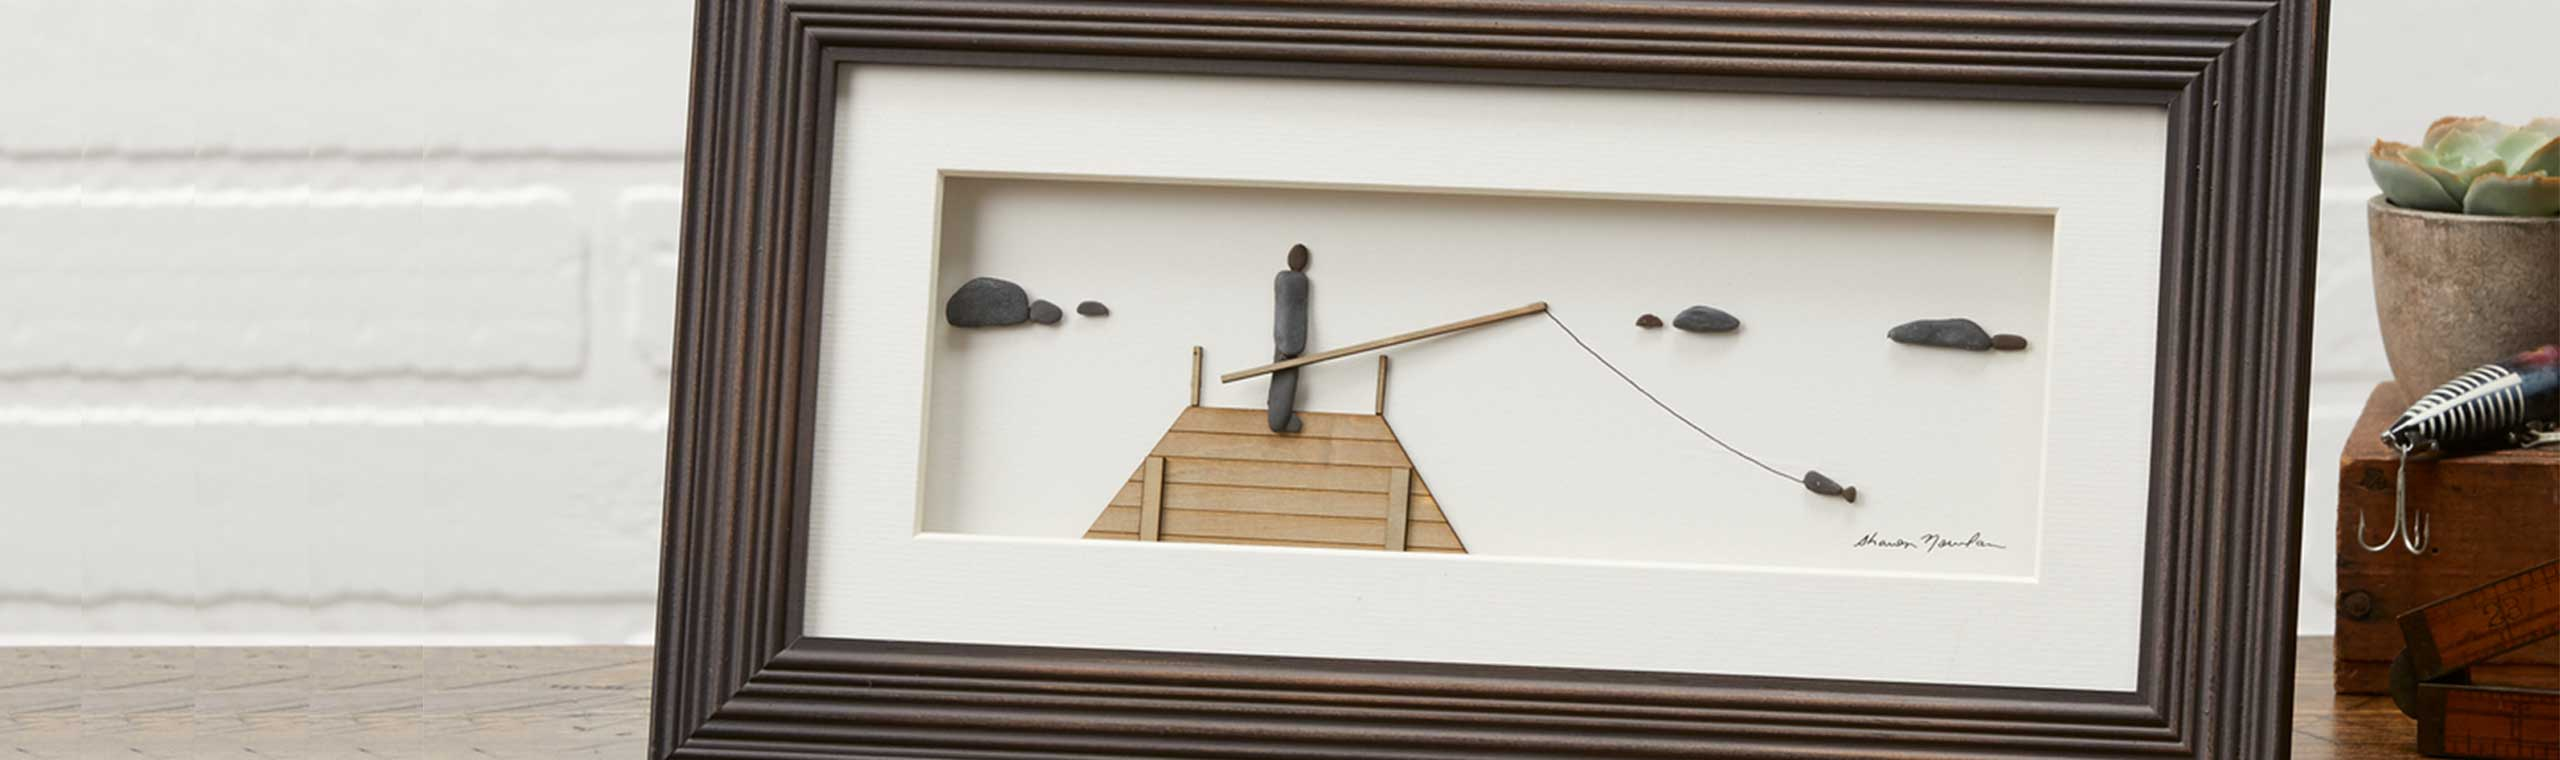 Wood-framed pebble art of man fishing off a dock